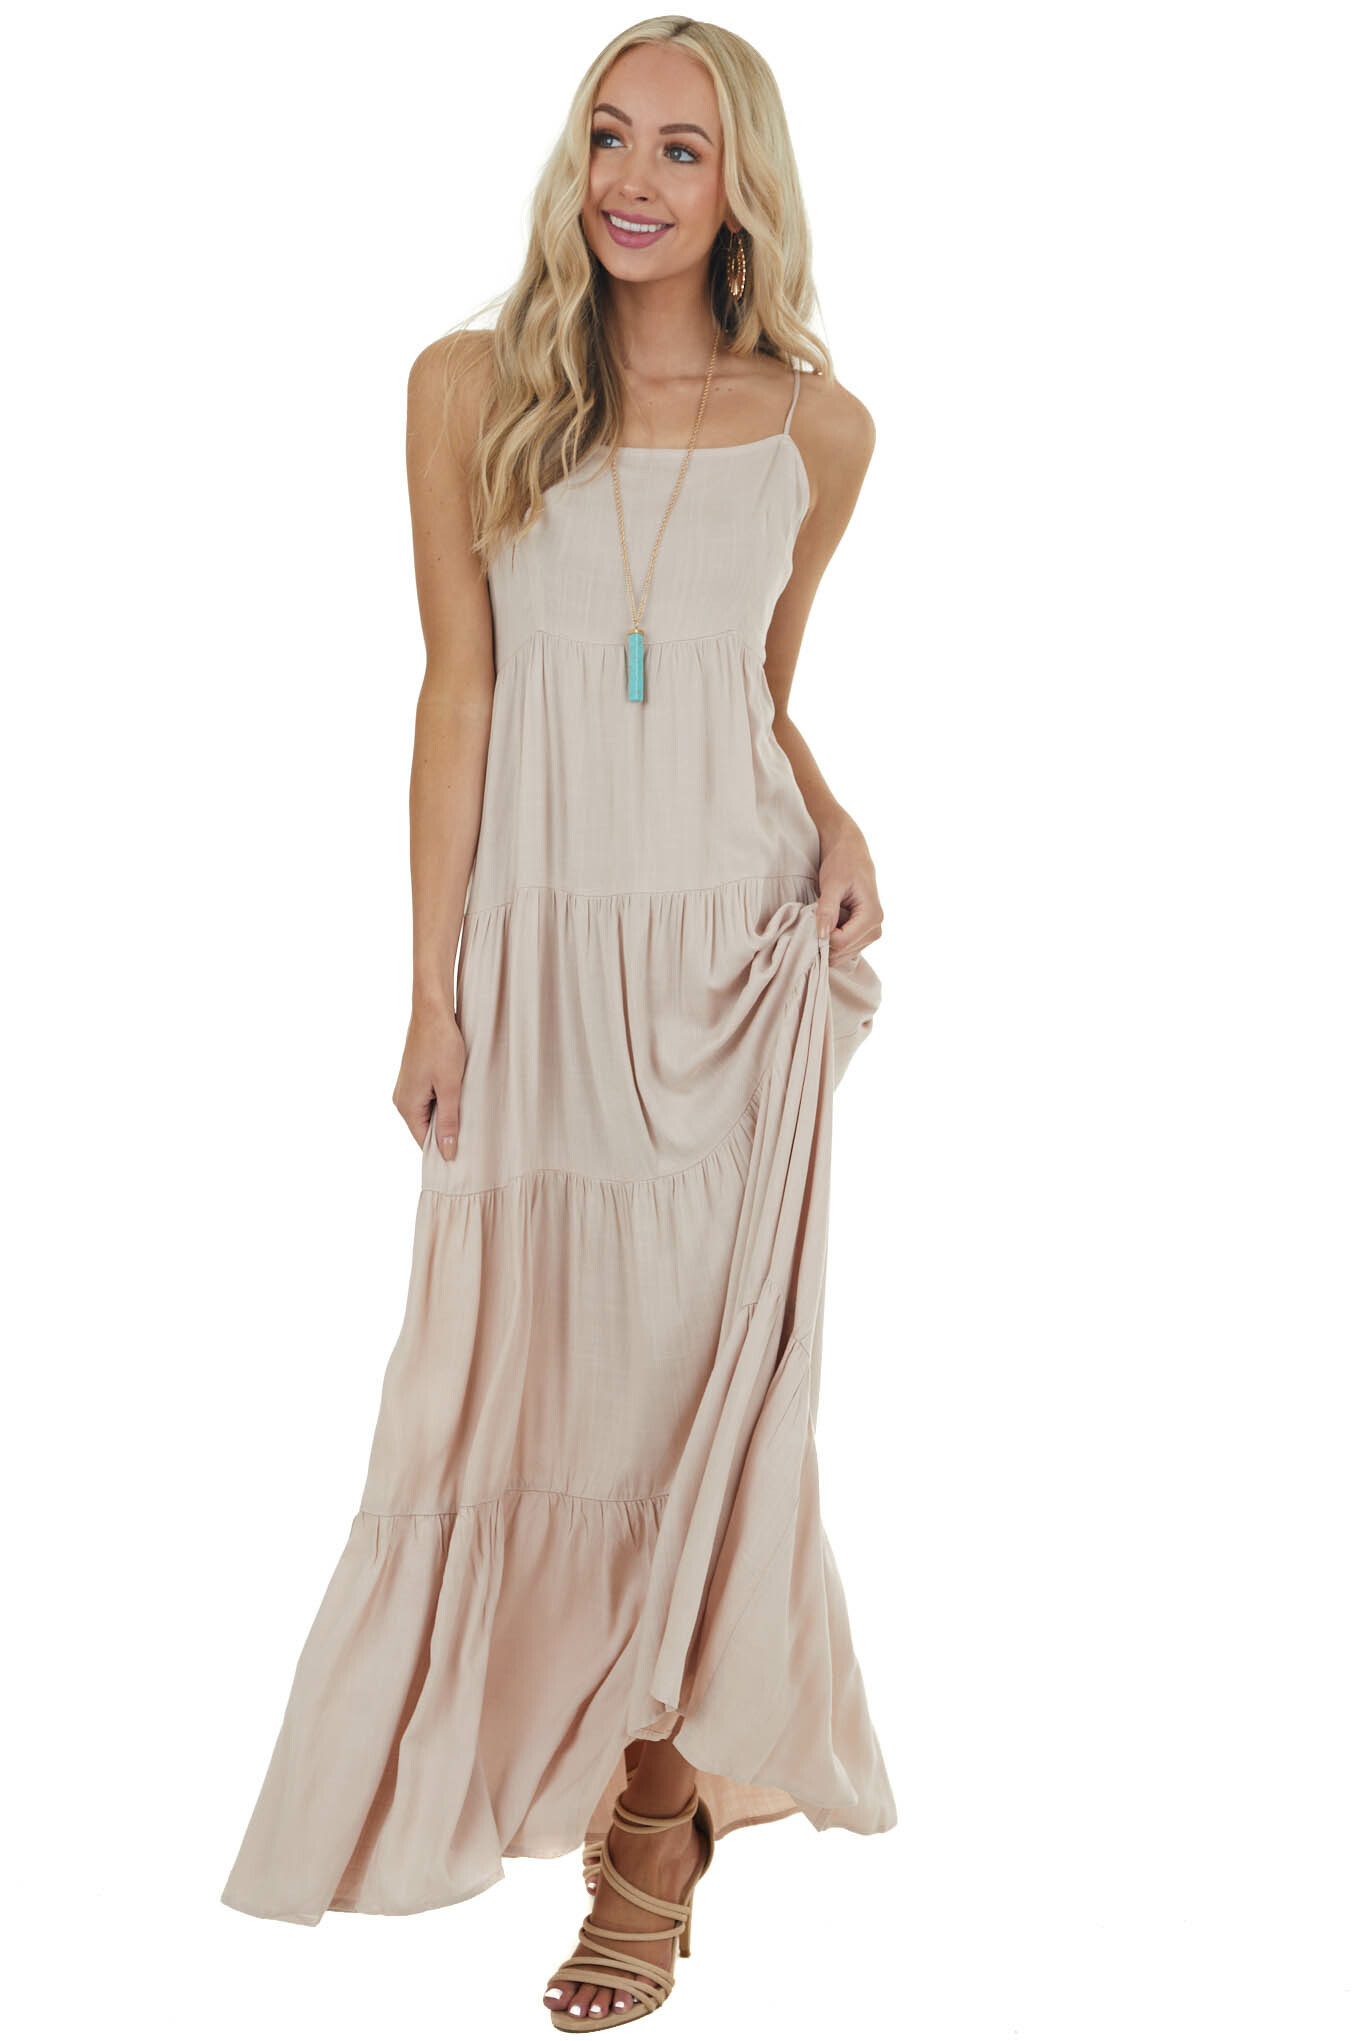 Latte Solid Tiered Sleeveless Square Neck Maxi Dress